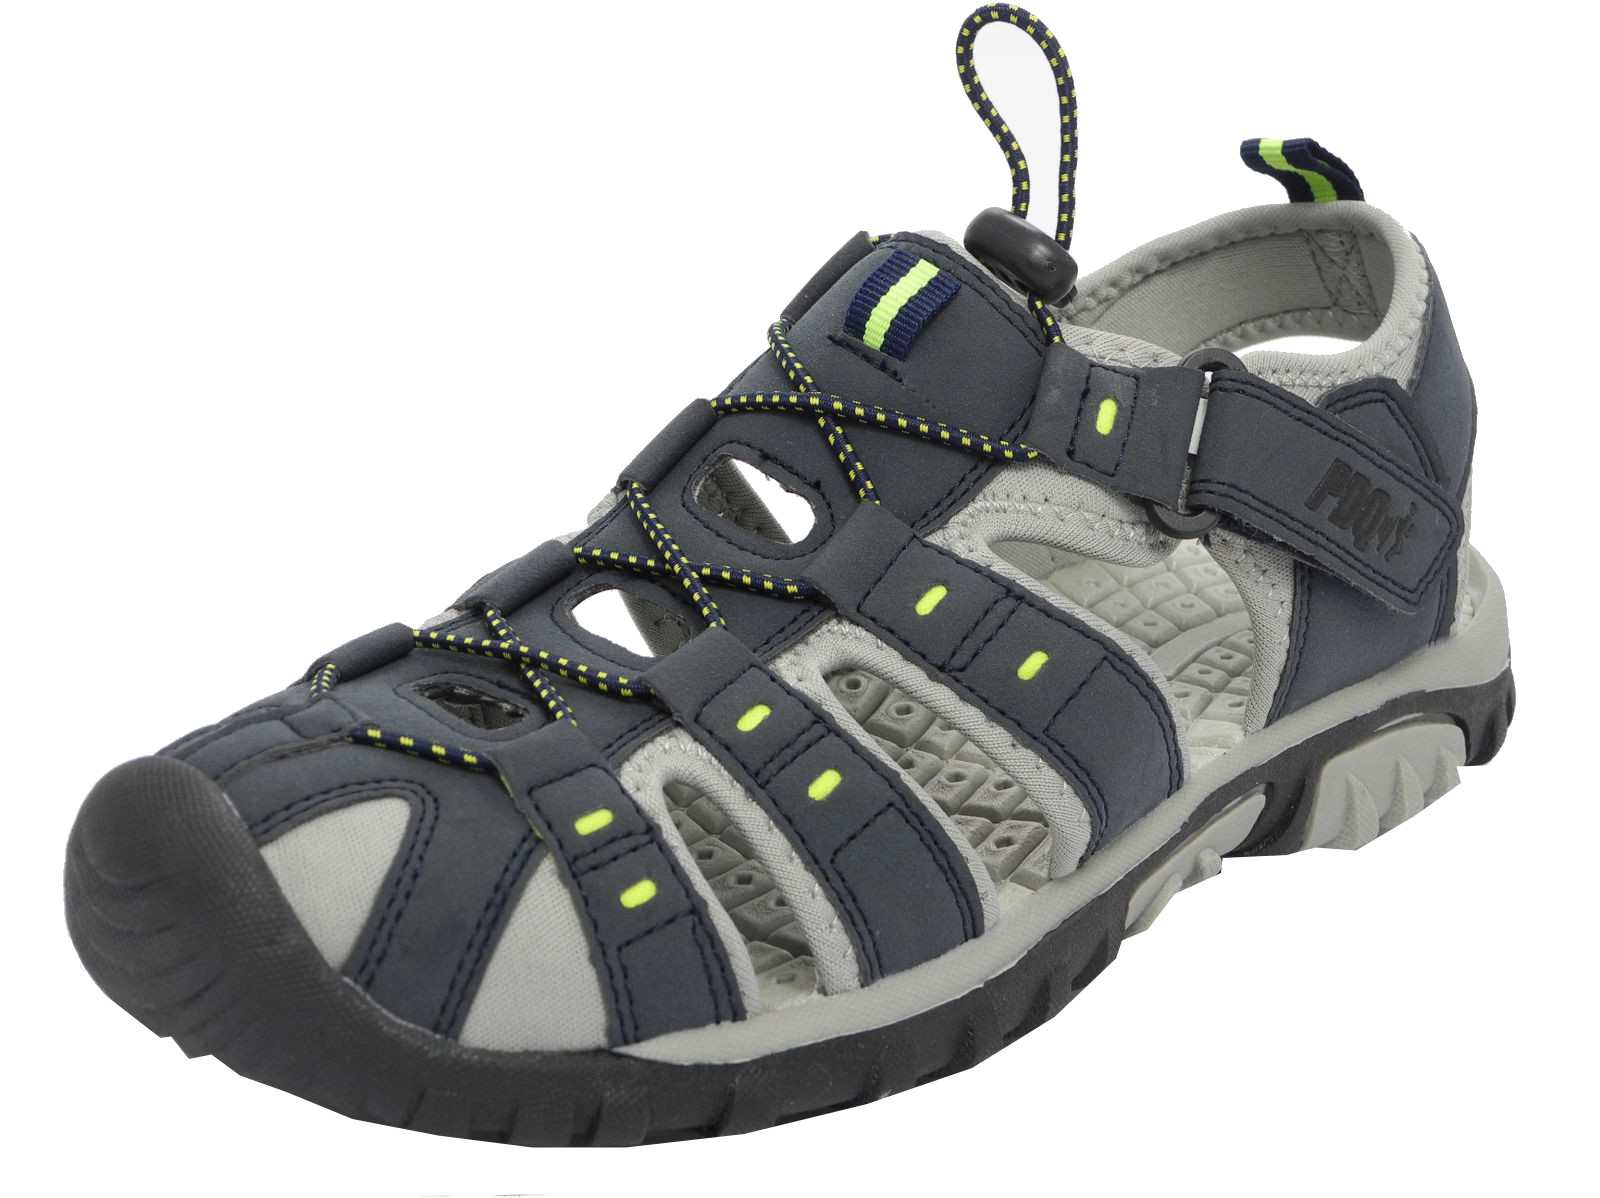 Sandals or shoes for hiking - Mens Boys Pdq Sports Hiking Closed Toe Trail